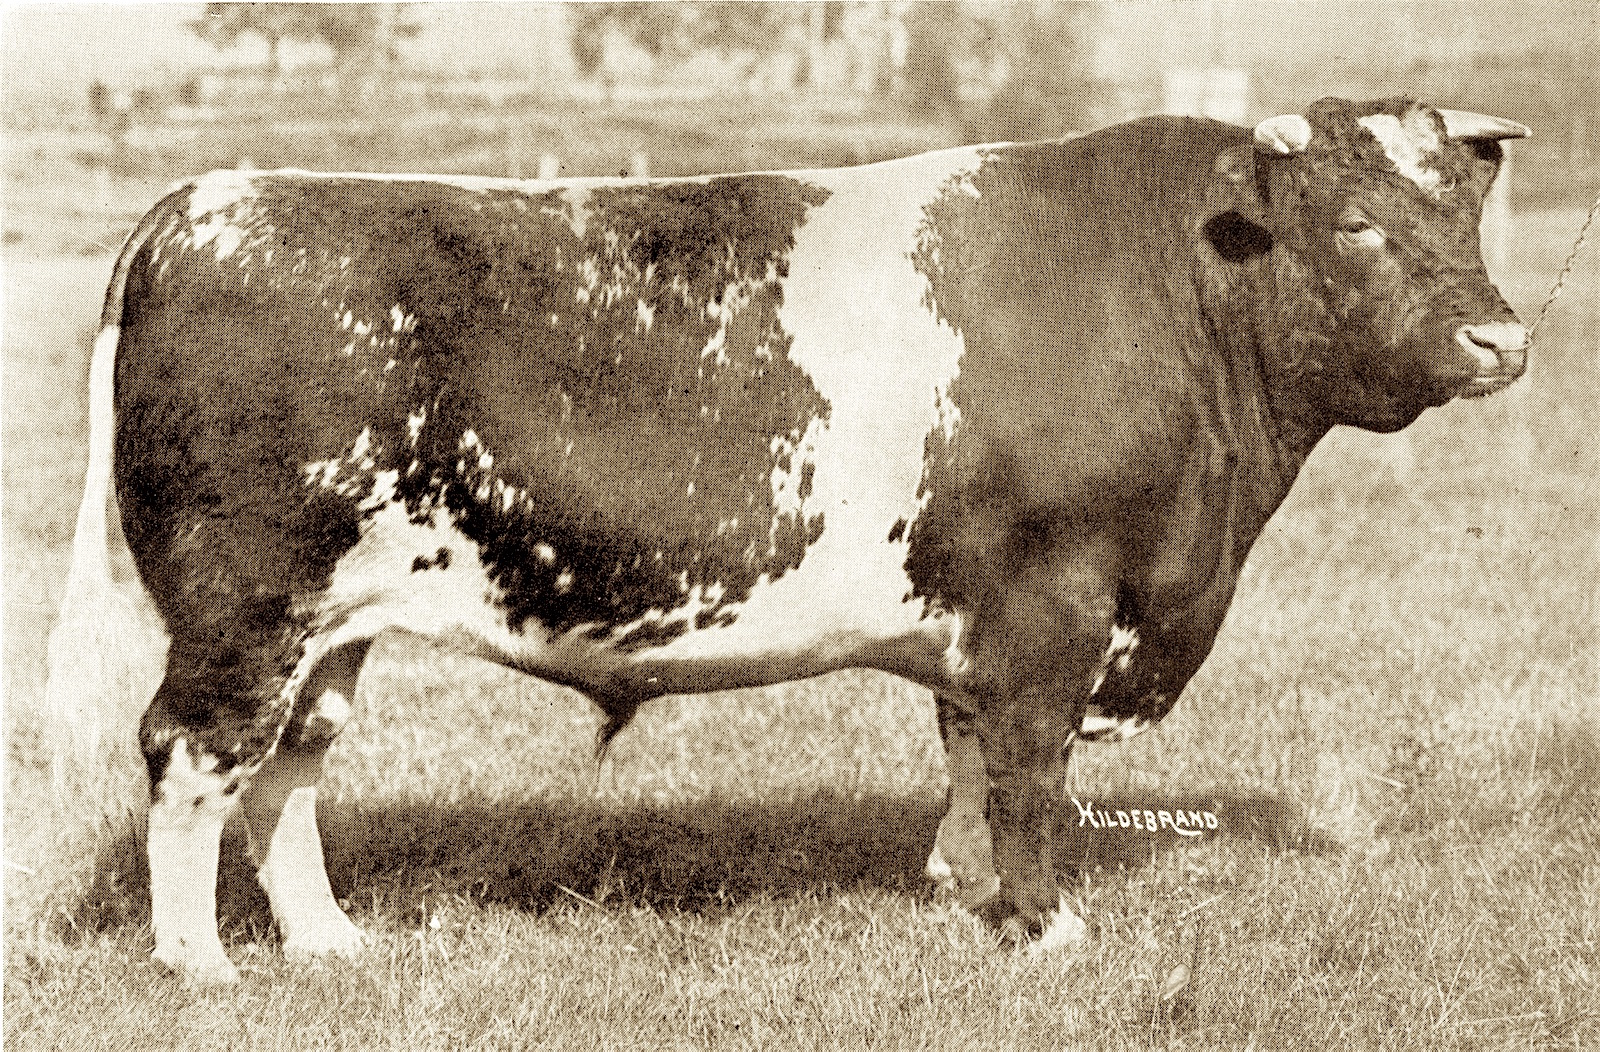 1910, '11, '13 Ringmaster 307894 bred by C.E. Clarke, St. Cloud, MN, shown by White & Smith, Gr. Champ Int'l..jpg